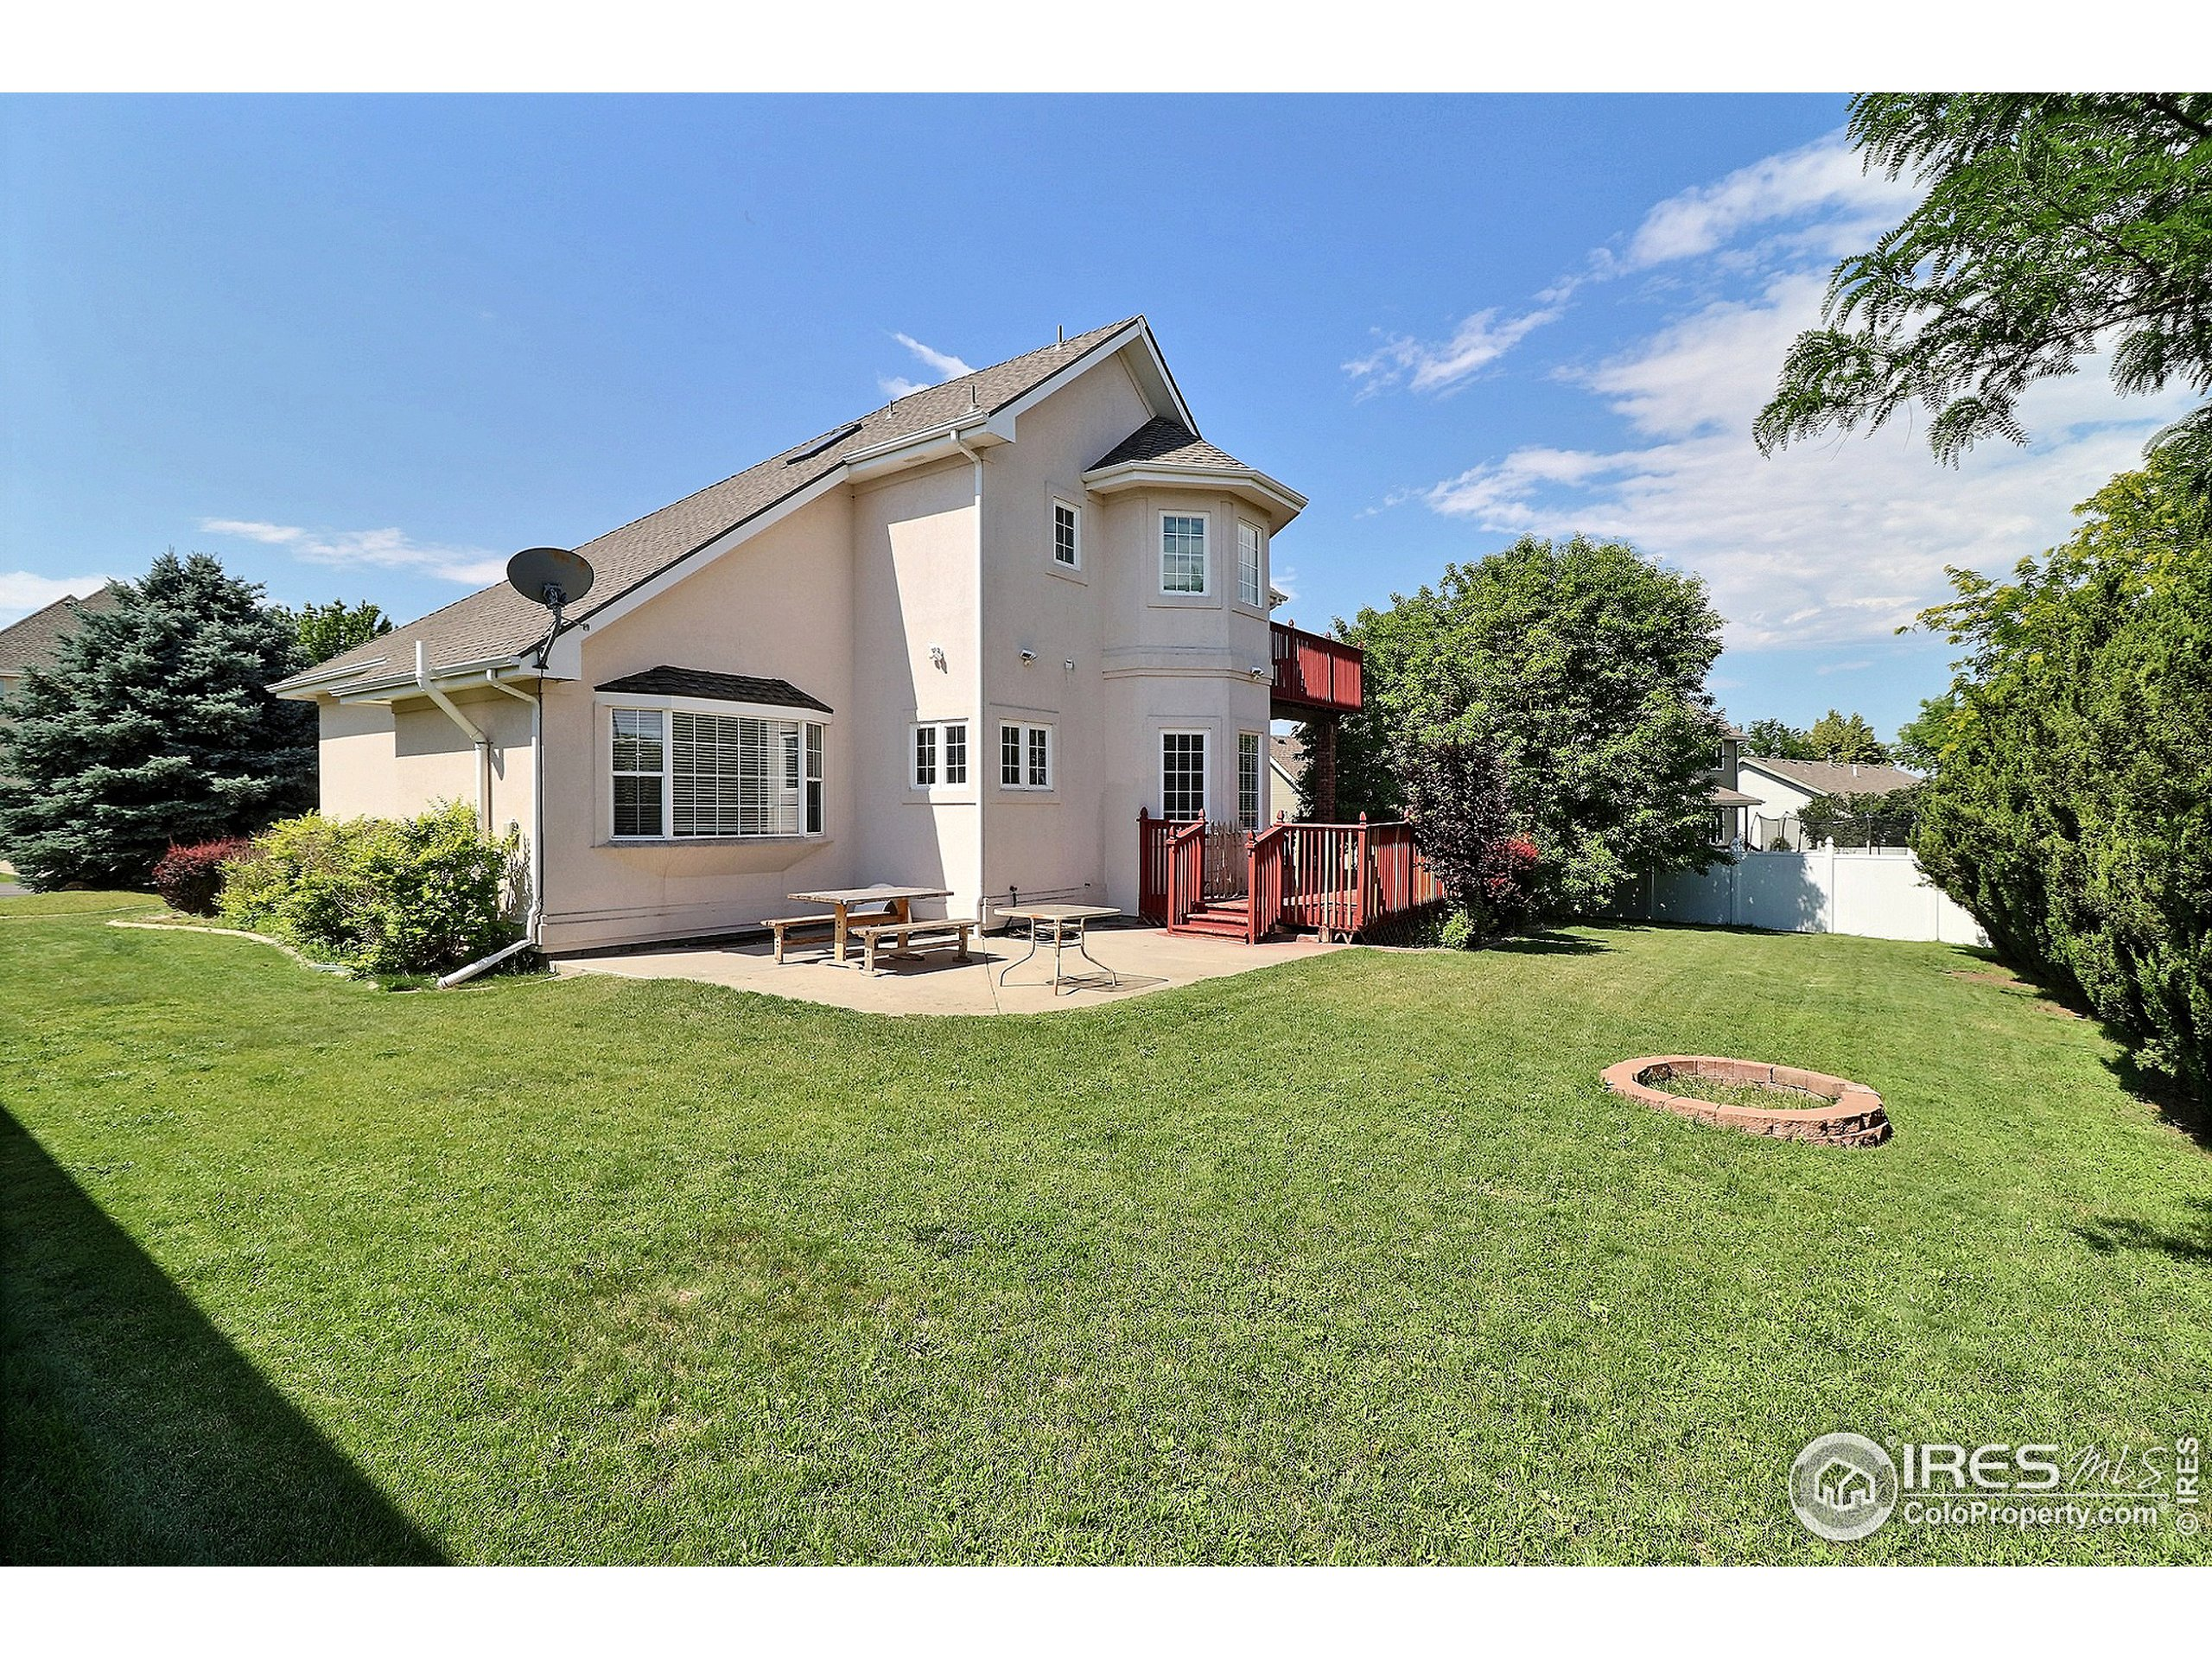 Don't Miss Out! Call and See This Gem Today!